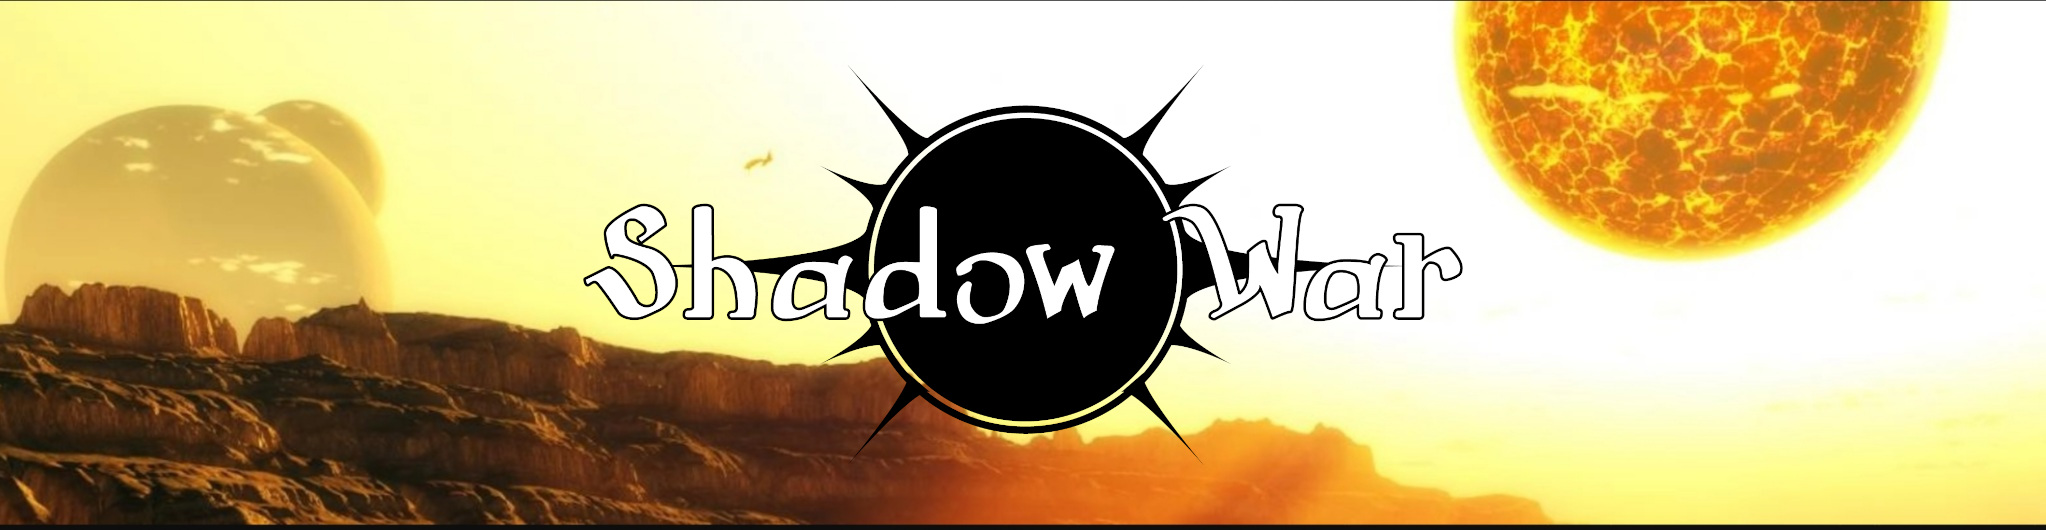 Shadow War World Background & Logo.jpg